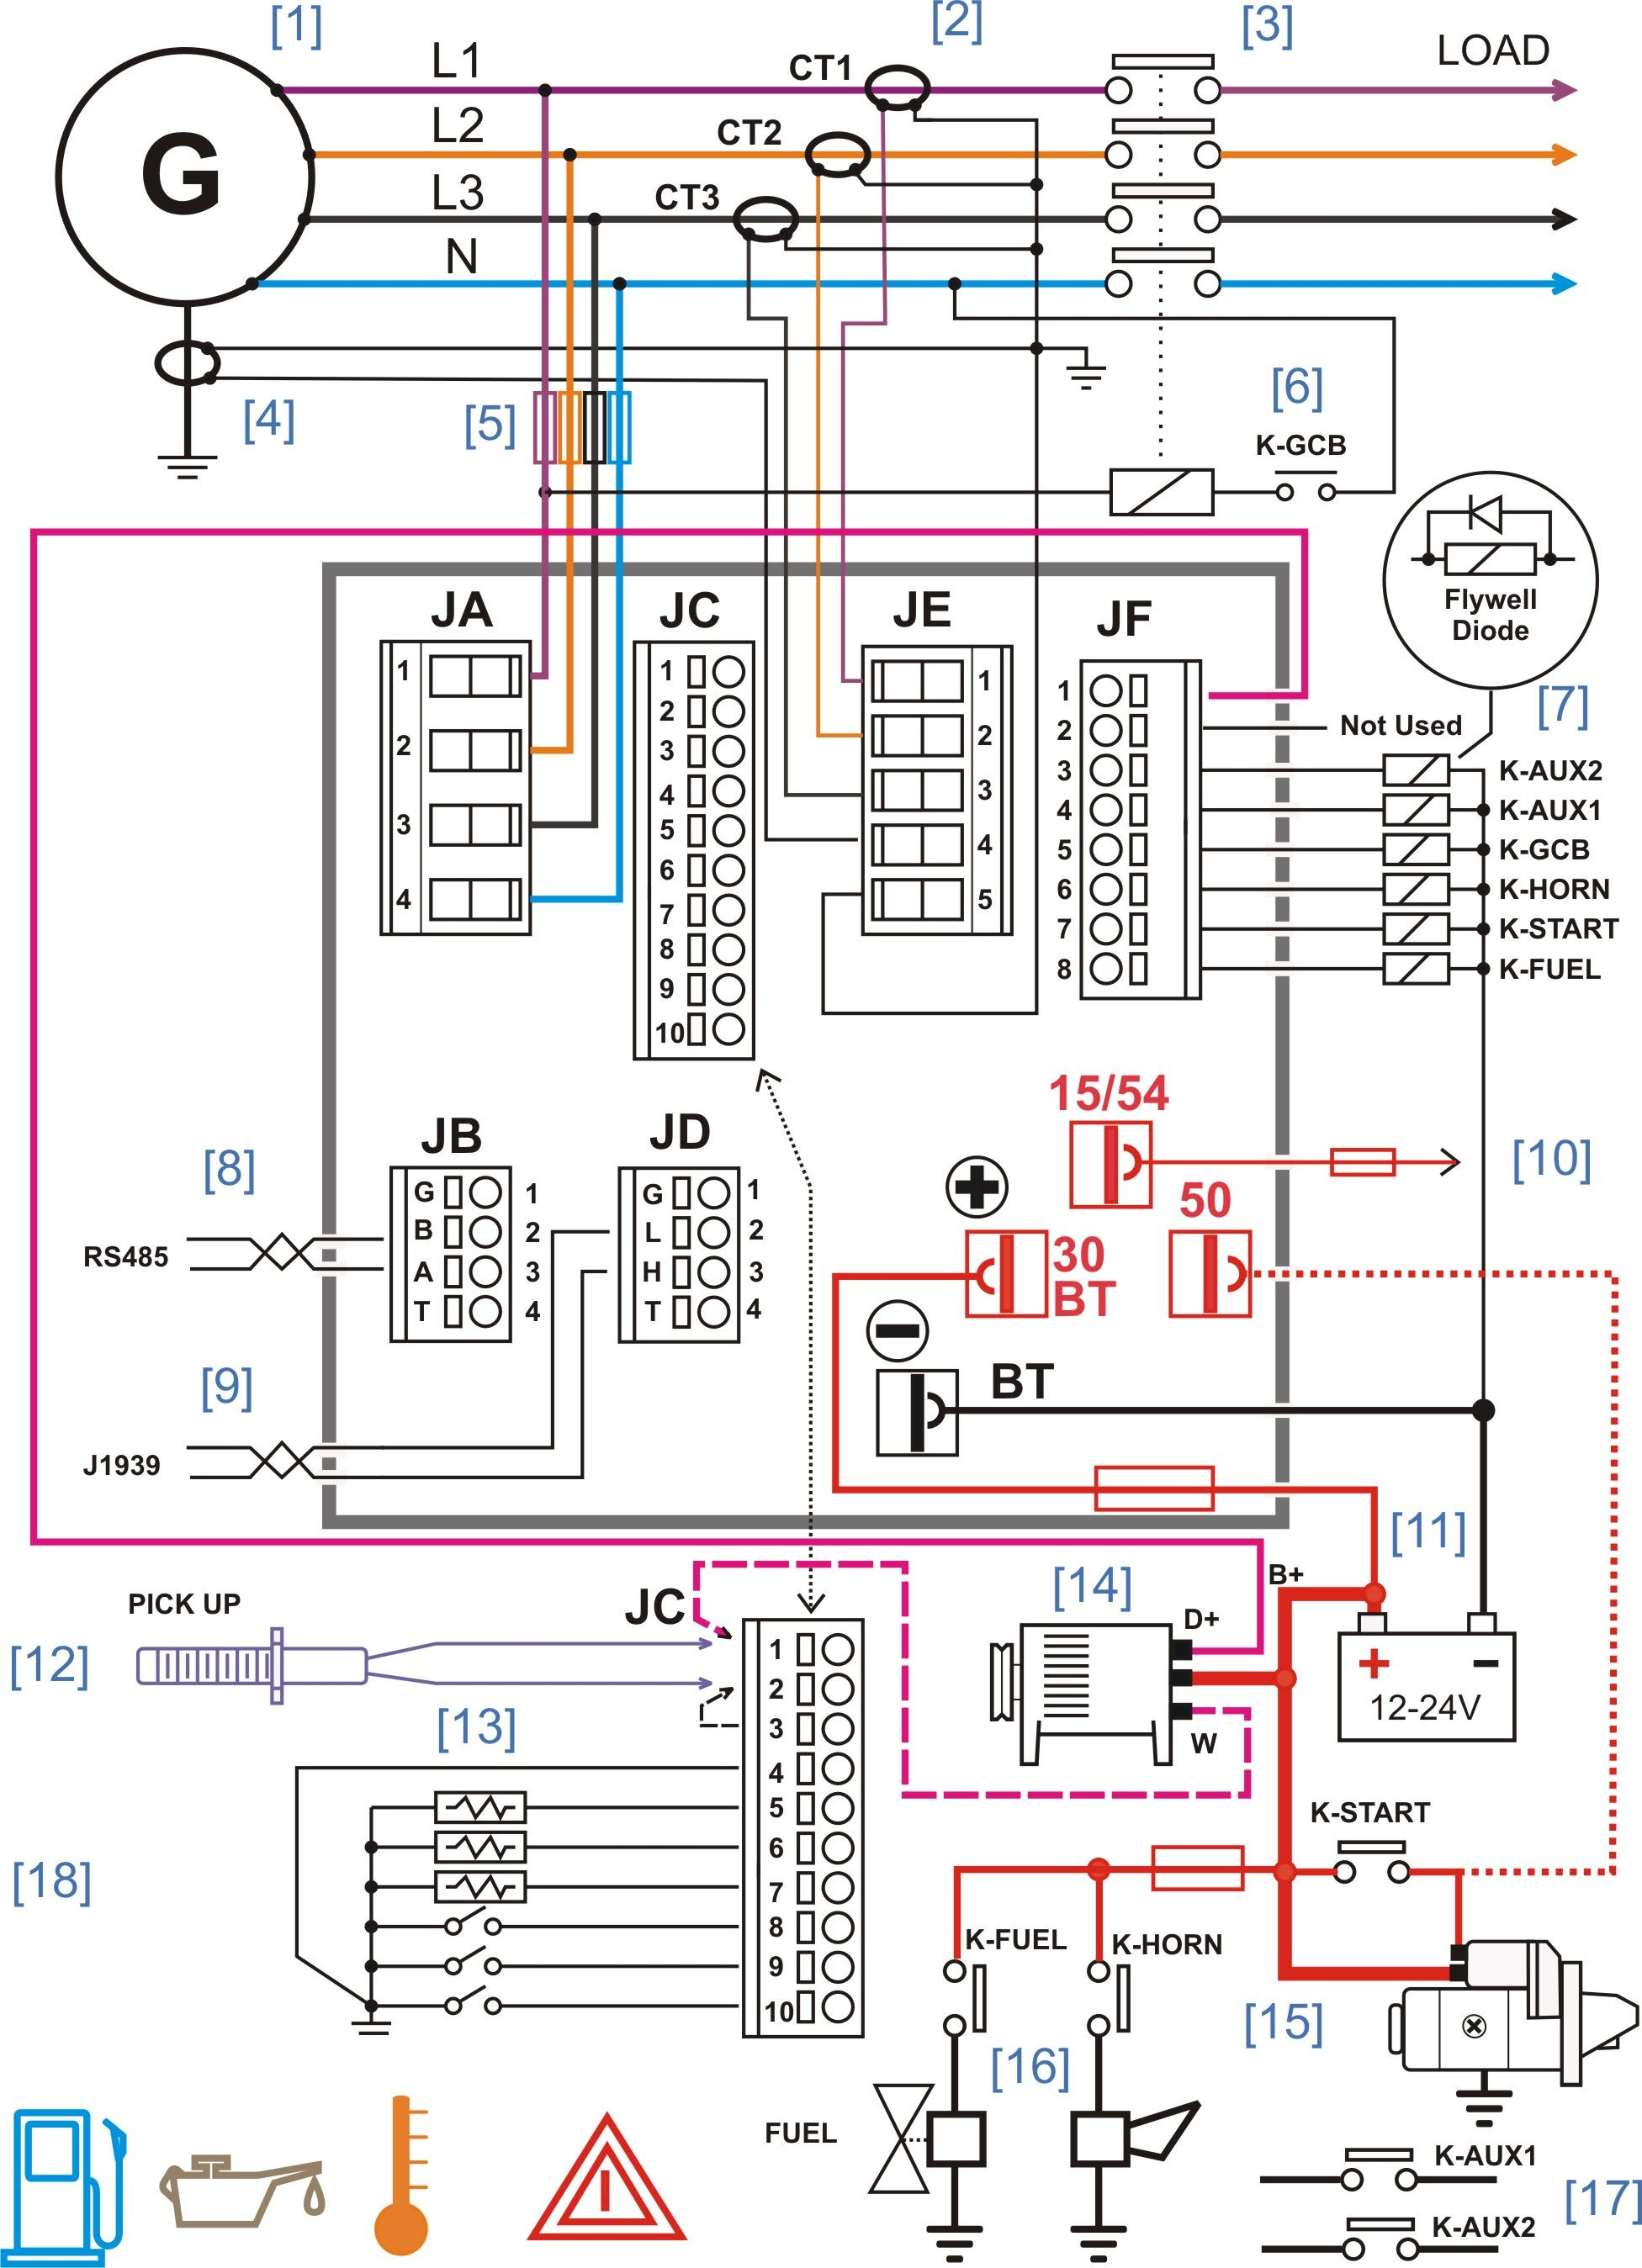 e32695bfa9986573569381a039ba42a6 diesel generator control panel wiring diagram gr pinterest wiring diagram for generators at gsmx.co